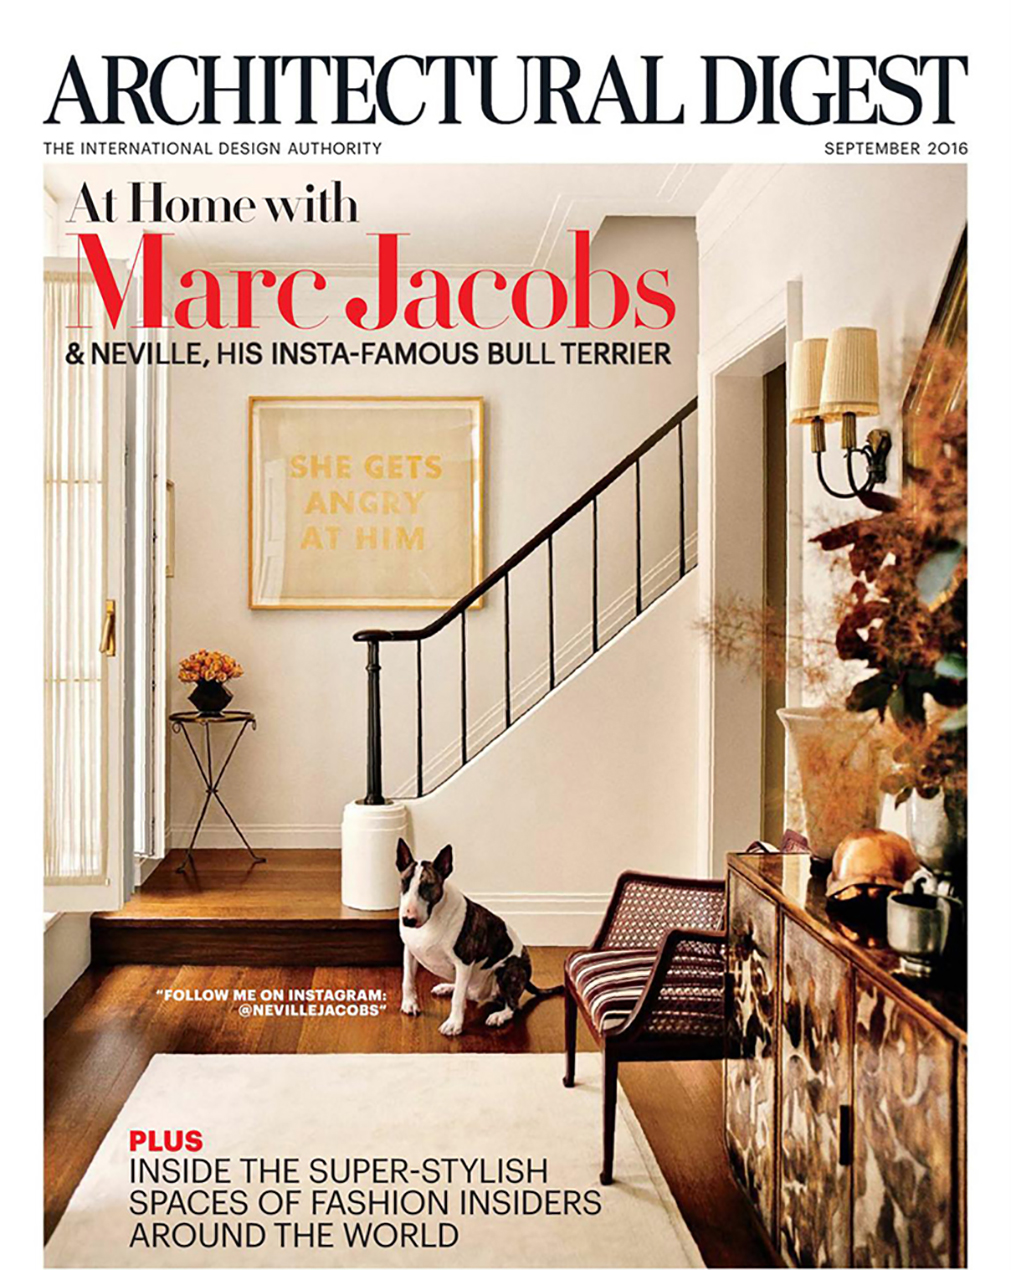 Architectural Digest cover story featuring Marc Jacobs New York City townhouse with H. Theophile hardware.